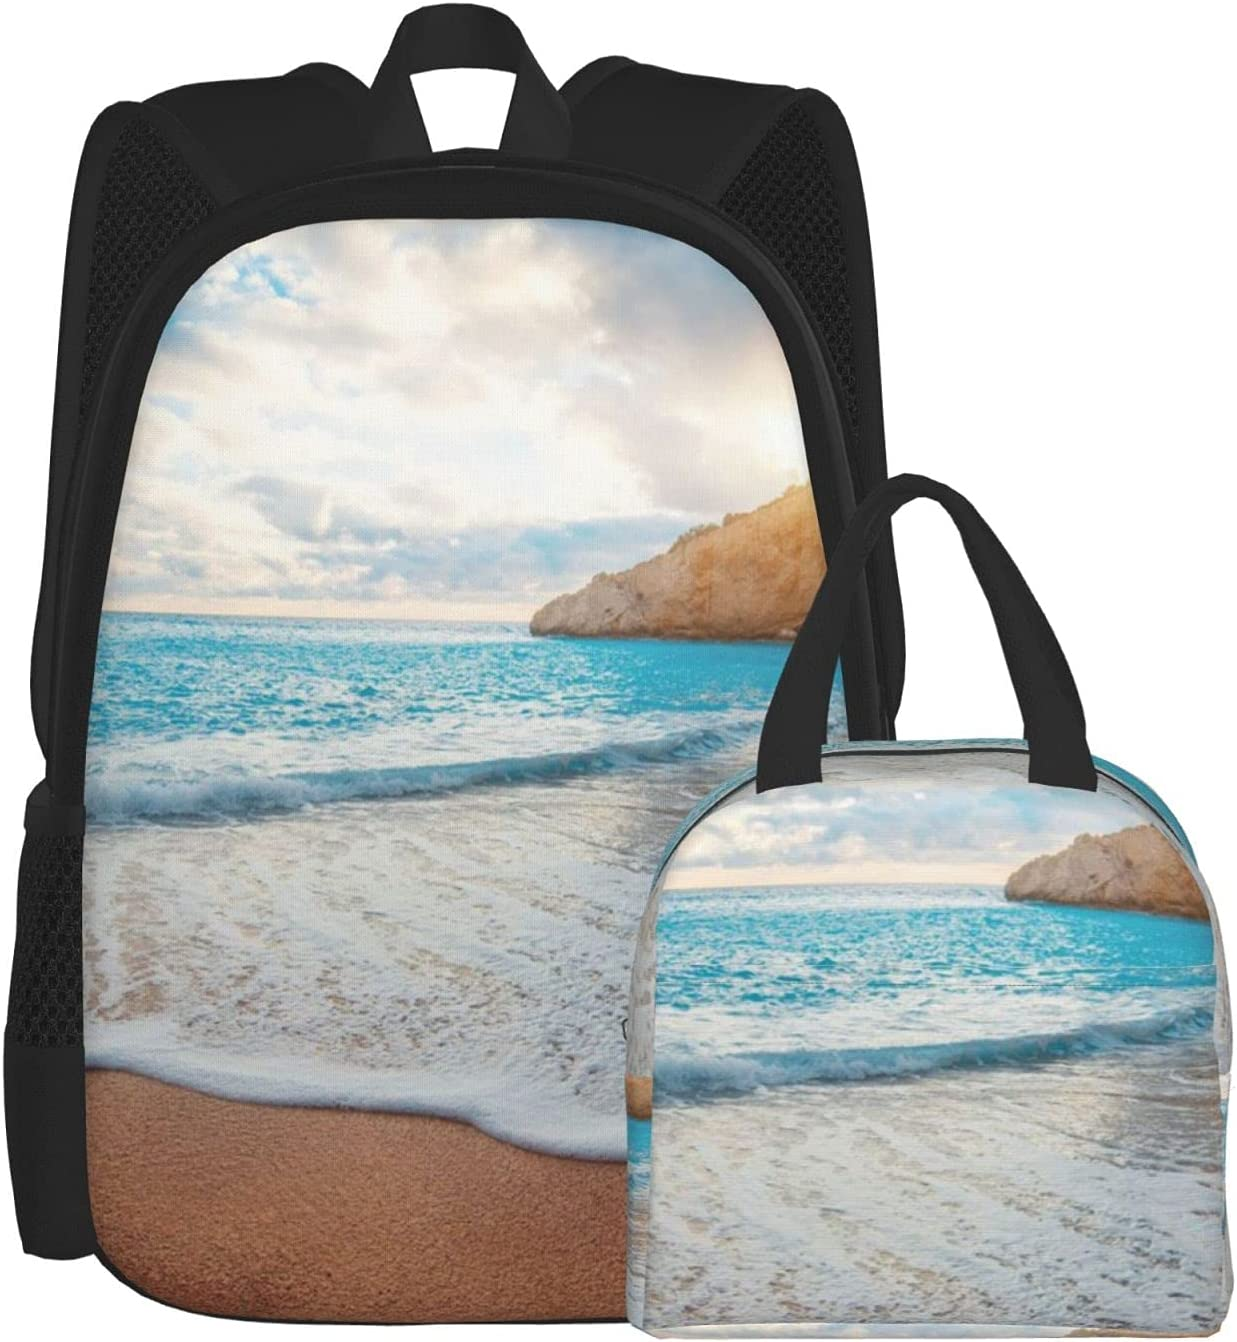 Backpack And Lunch Columbus Phoenix Mall Mall Bag Set 2 Rush To Beach Tropical Water Piece